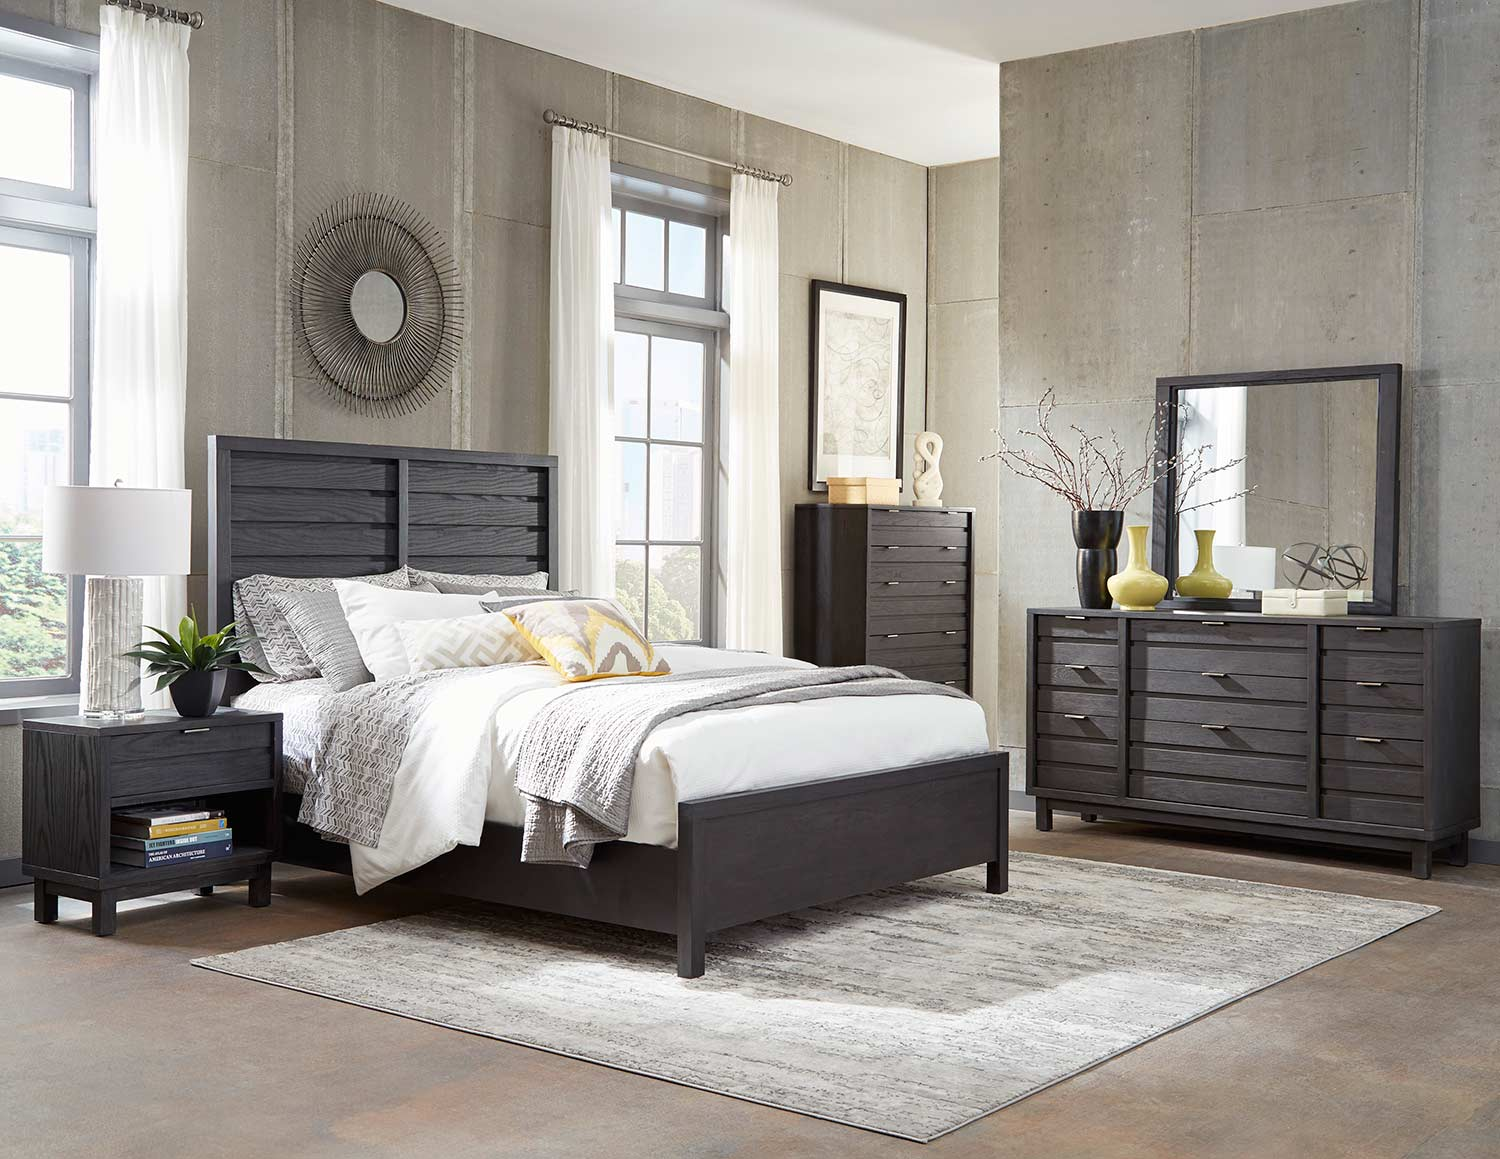 Homelegance Robindell Bedroom Set - Ebony